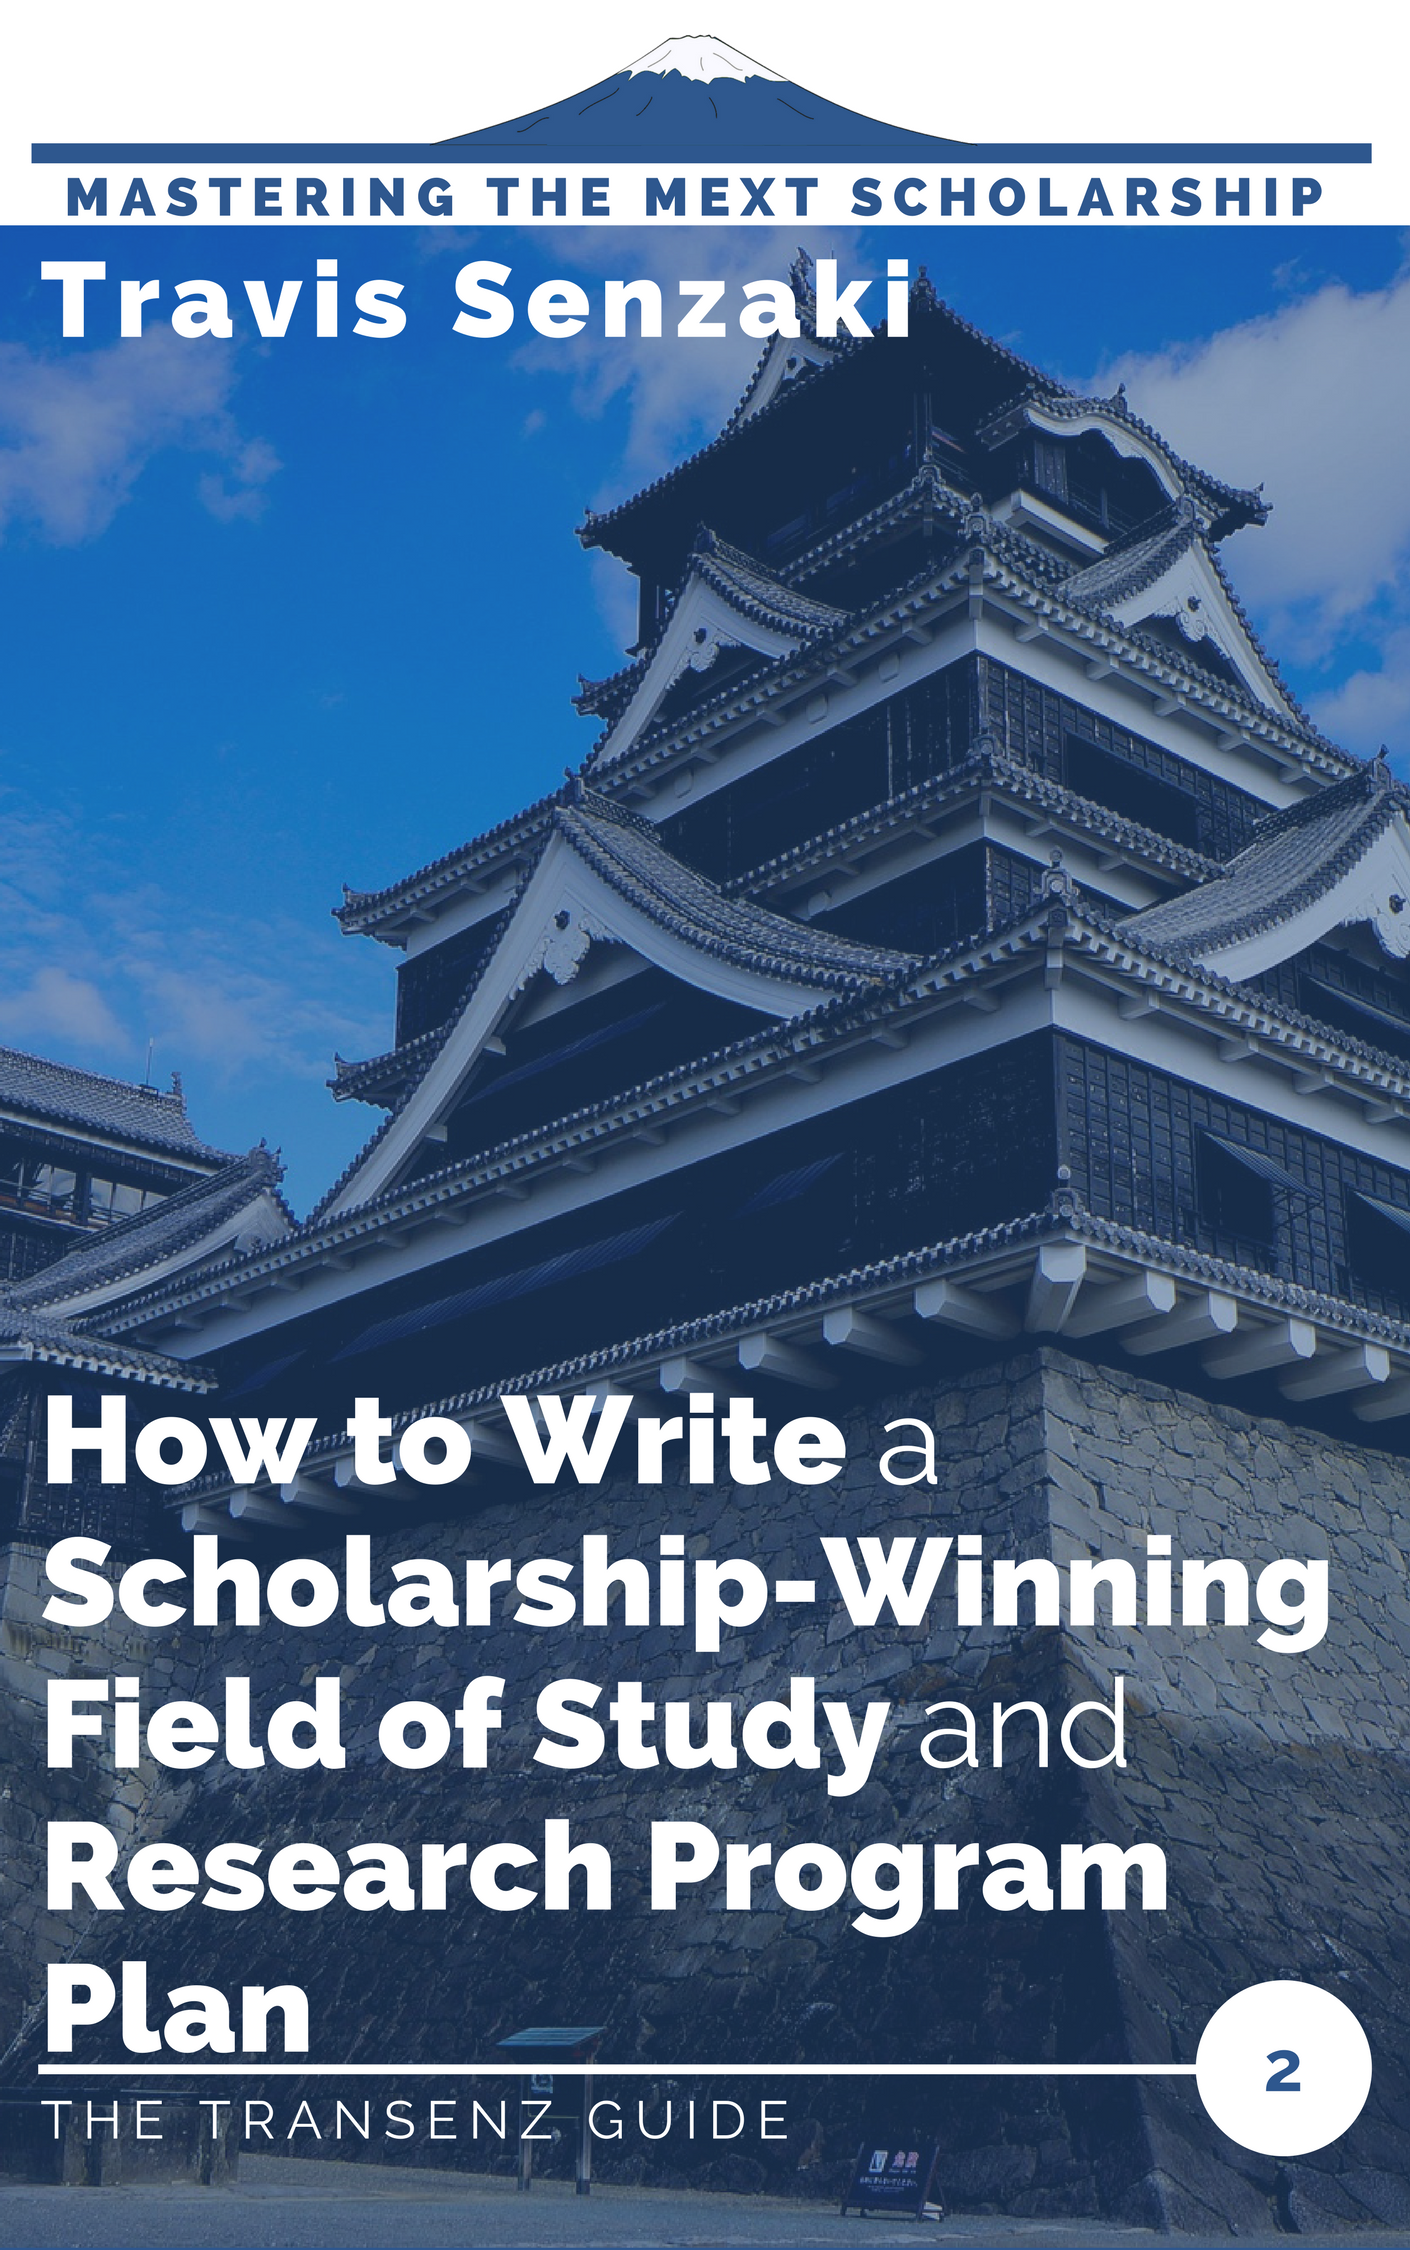 How to write the field of study and research program plan MEXT scholarship guide ebook